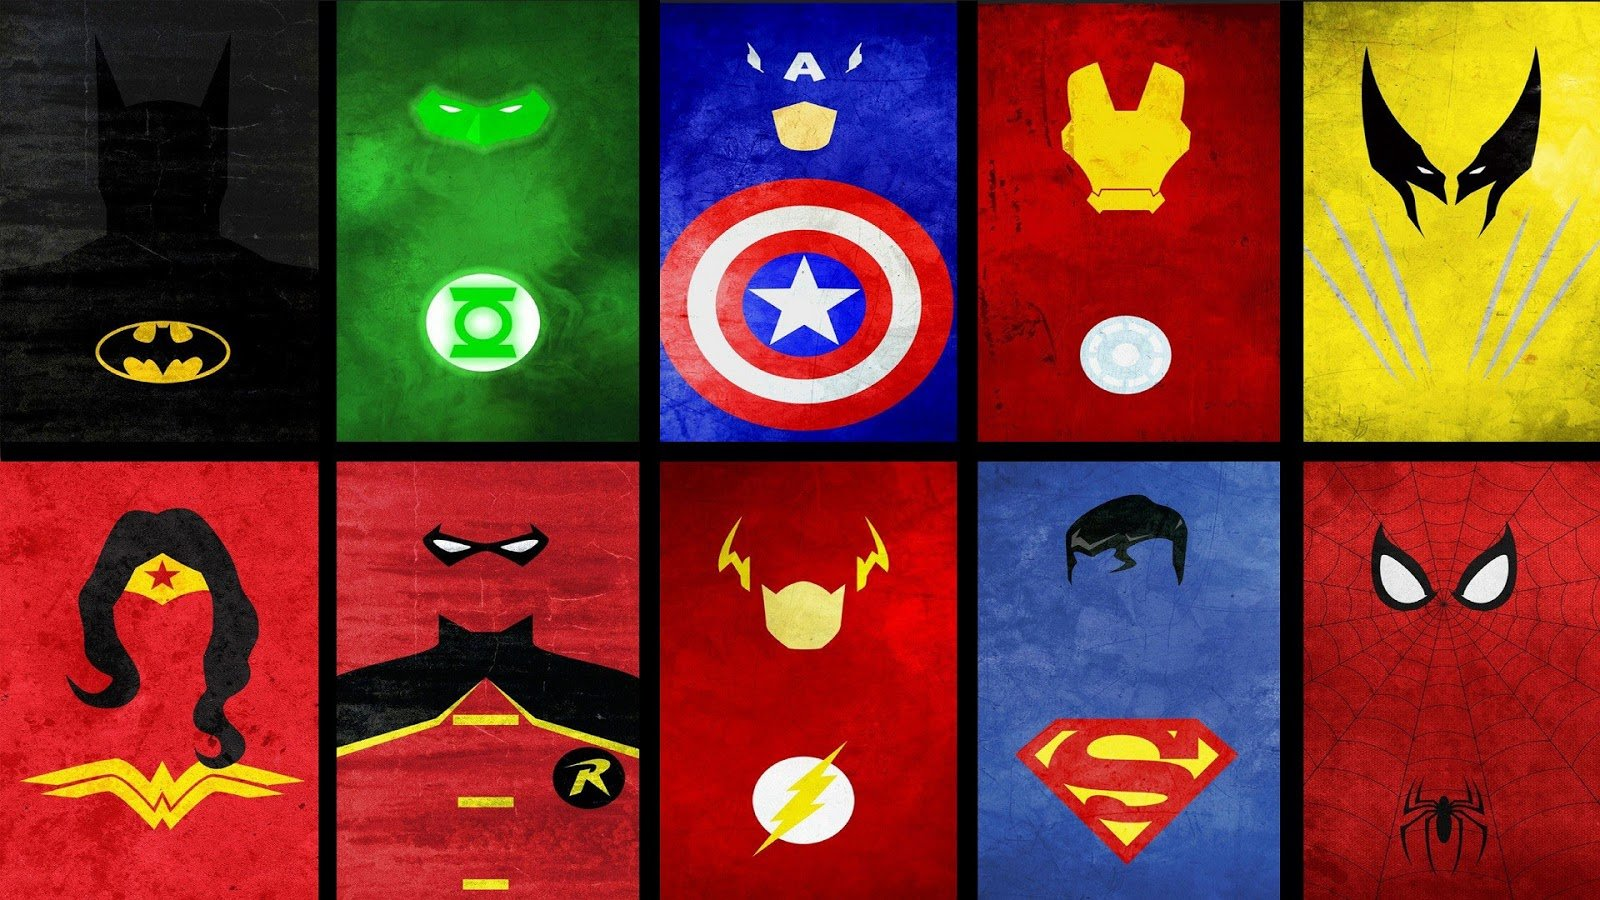 Superhero Logos Wallpaper Images Pictures   Becuo 1600x900